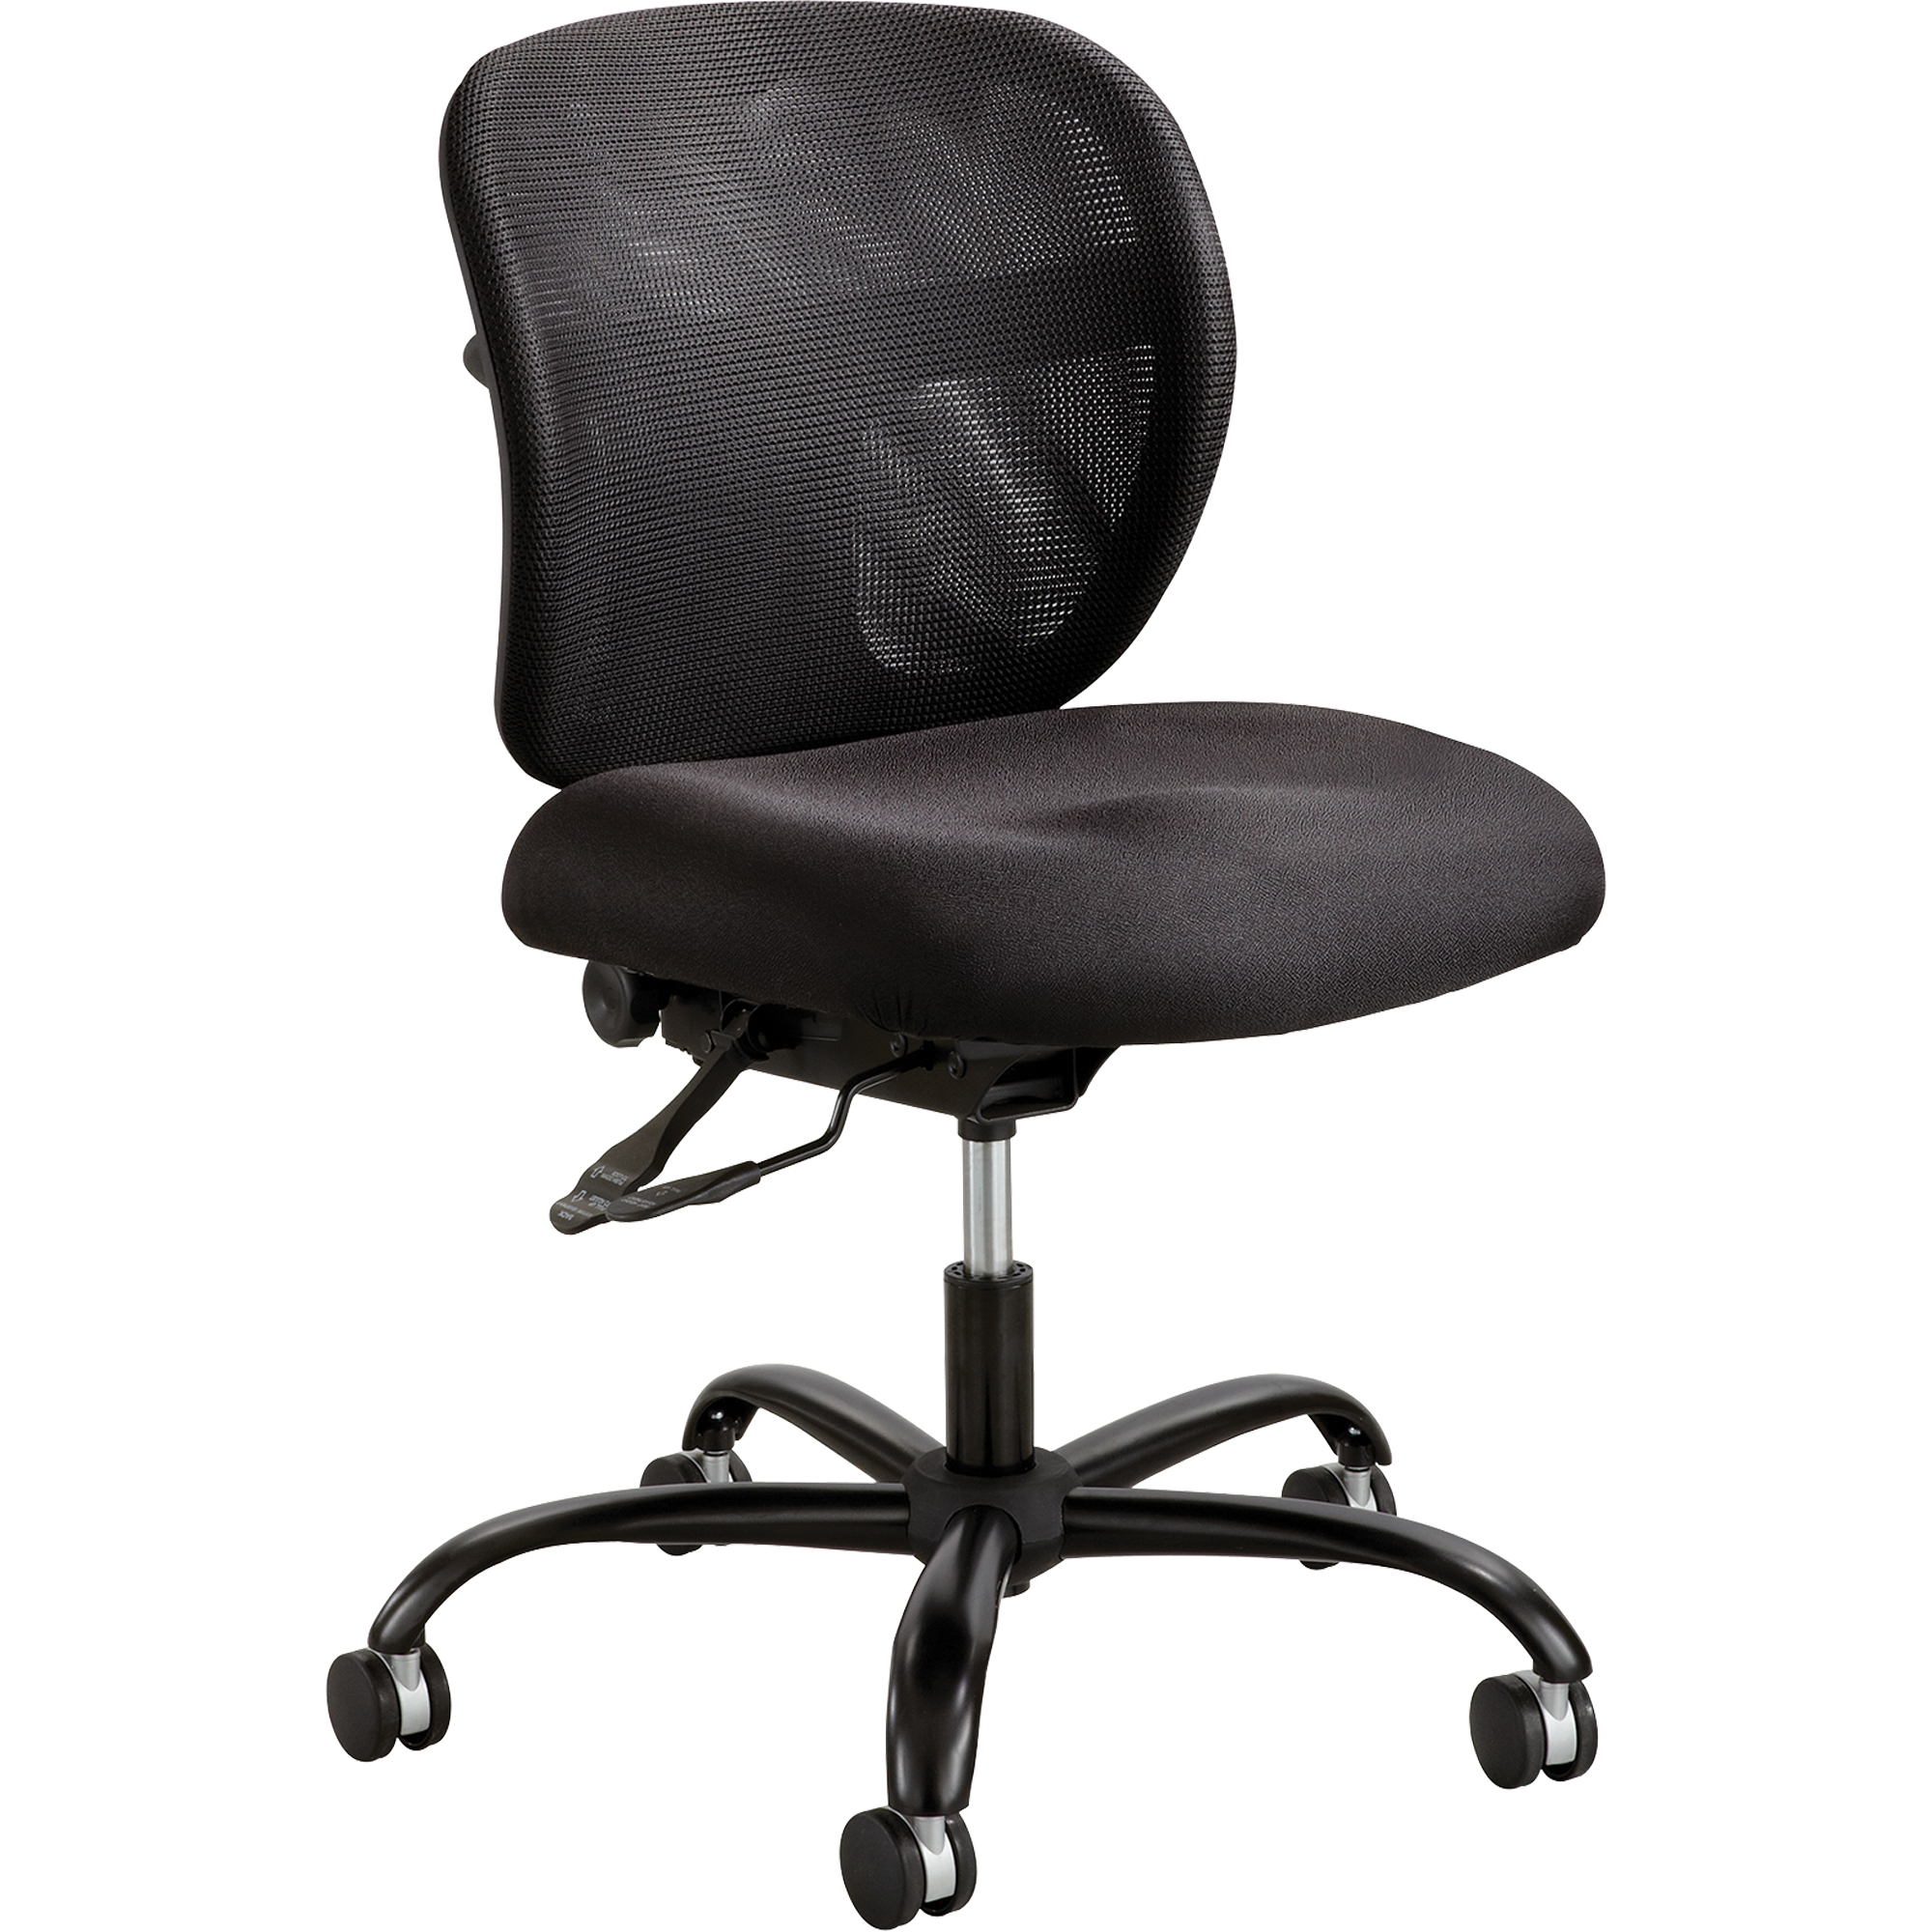 SAFCO Vue Intensive Use 24/7 Mesh Task Chairs ON714 (3397BL) | Shop Office Chairs | TENAQUIP  sc 1 st  Tenaquip & SAFCO Vue Intensive Use 24/7 Mesh Task Chairs ON714 (3397BL) | Shop ...